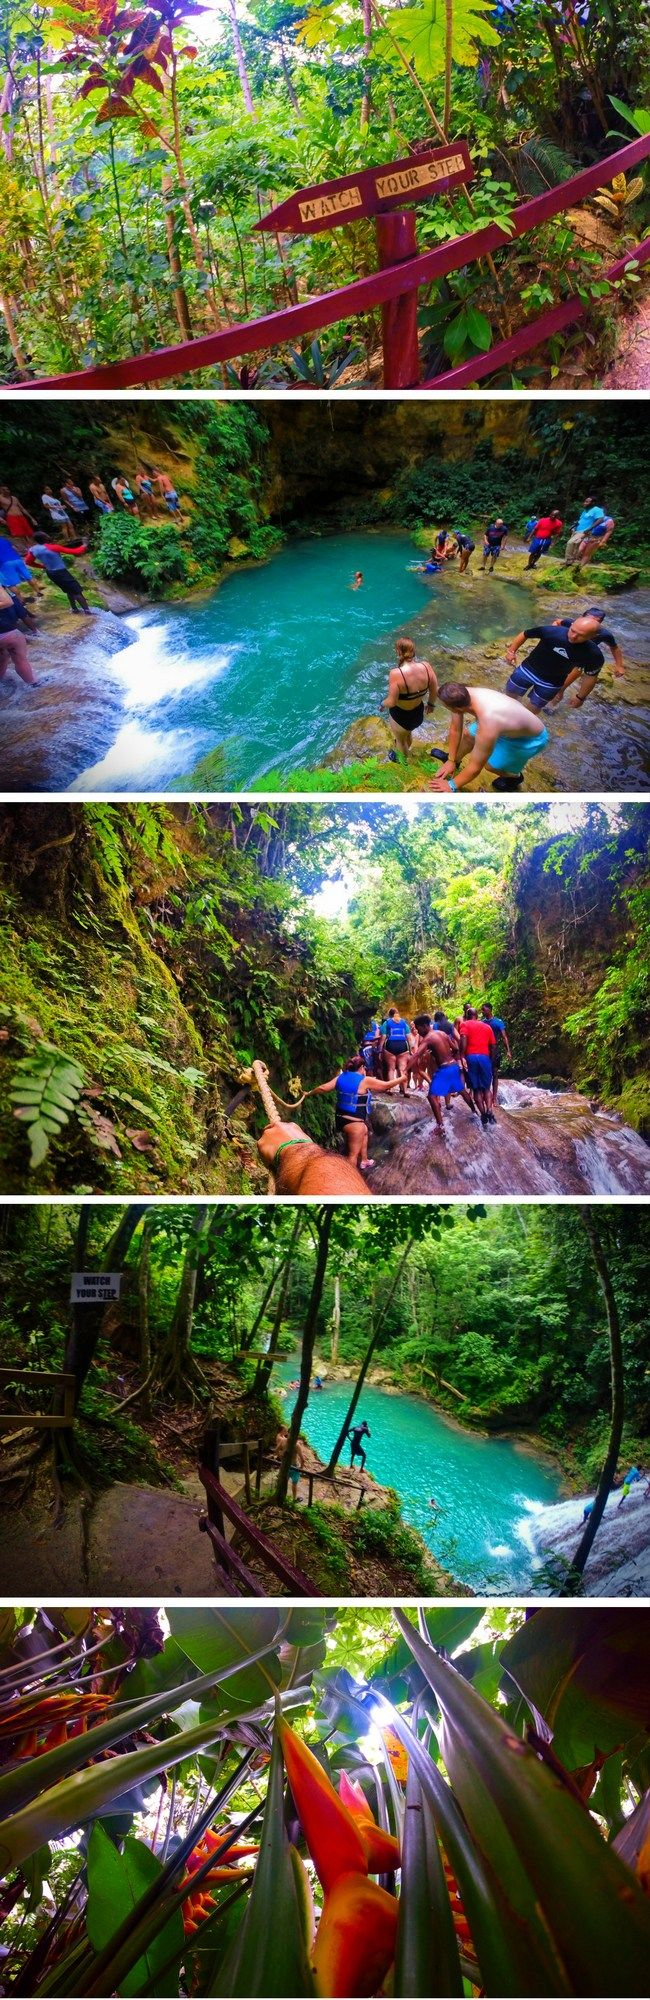 Jumping off waterfalls at the Blue Hole in Ocho Rios, Jamaica is an awesome jungle experience. 2traveldads.com